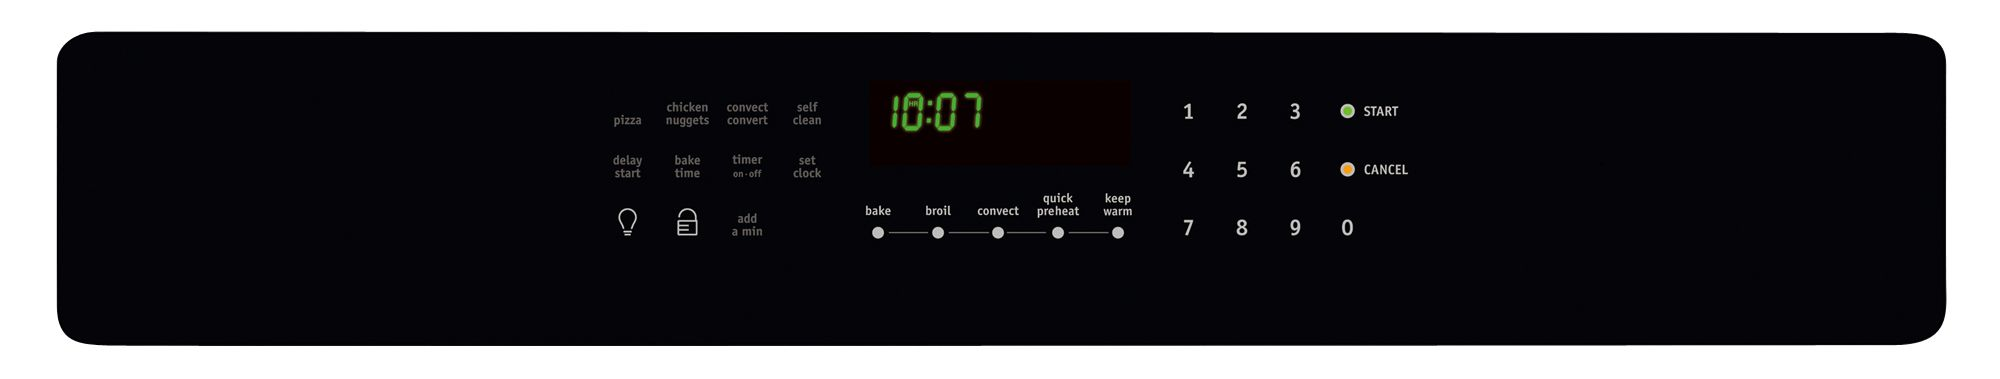 "Frigidaire Gallery 30"" Single Wall Oven - Black"